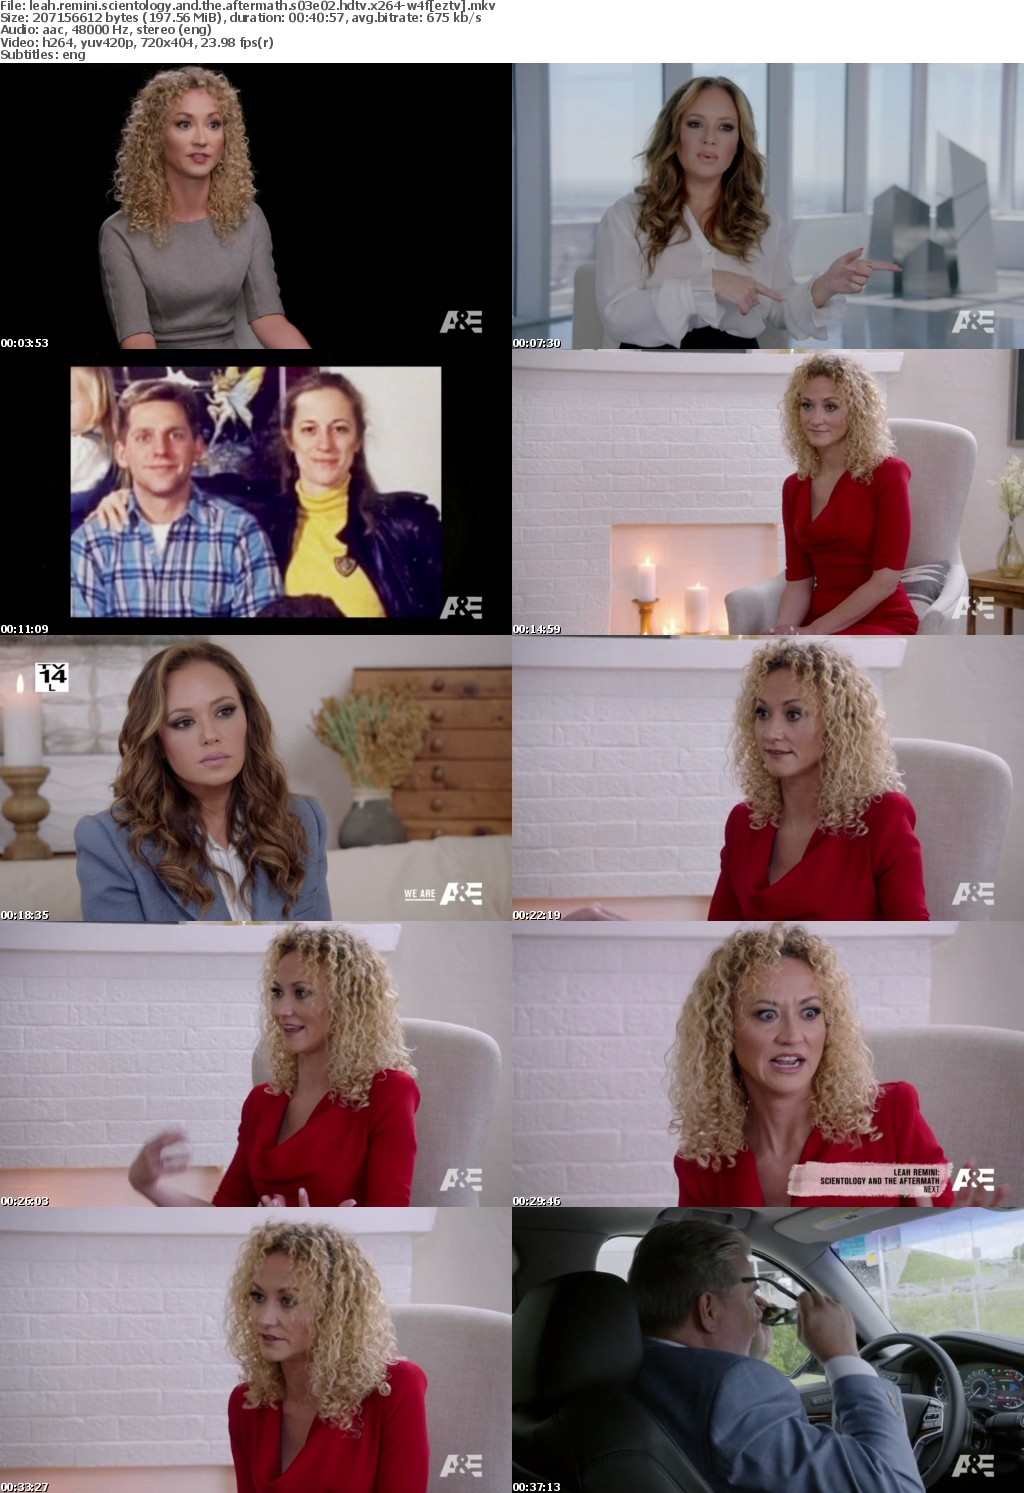 Leah Remini Scientology and the Aftermath S03E02 HDTV x264-W4F